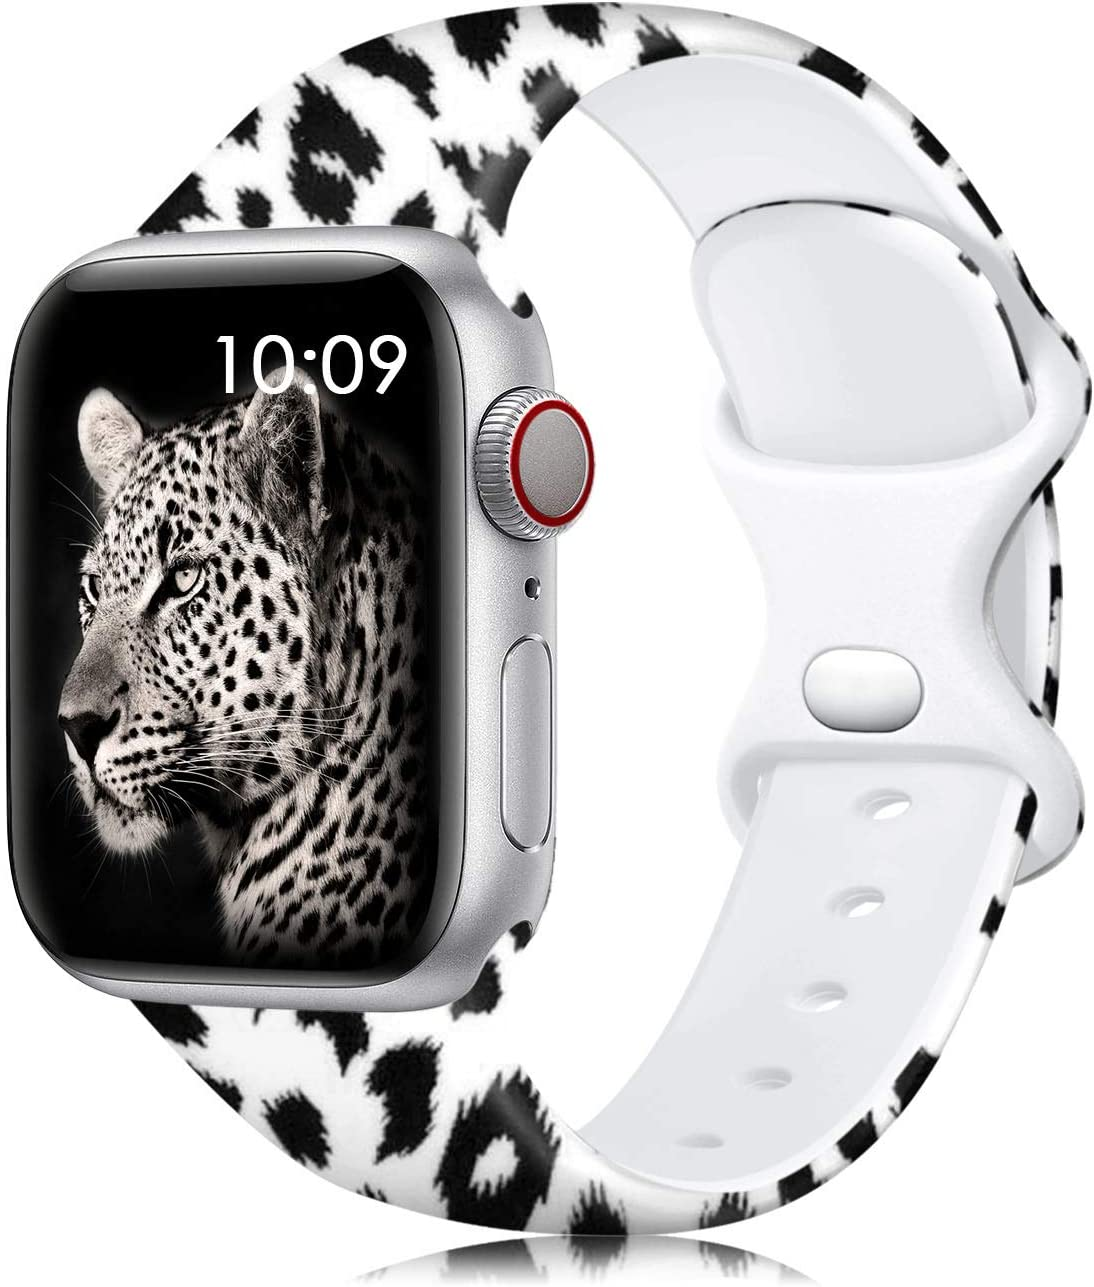 Lerobo Leopard Band Compatible with Apple Watch Bands 40mm 38mm for Women Men, Silicone Floral Pattern Replacement Band for Apple Watch SE Series 6 Series 5 Serise 4 Serise 3 2 1, Black Leopard S/M